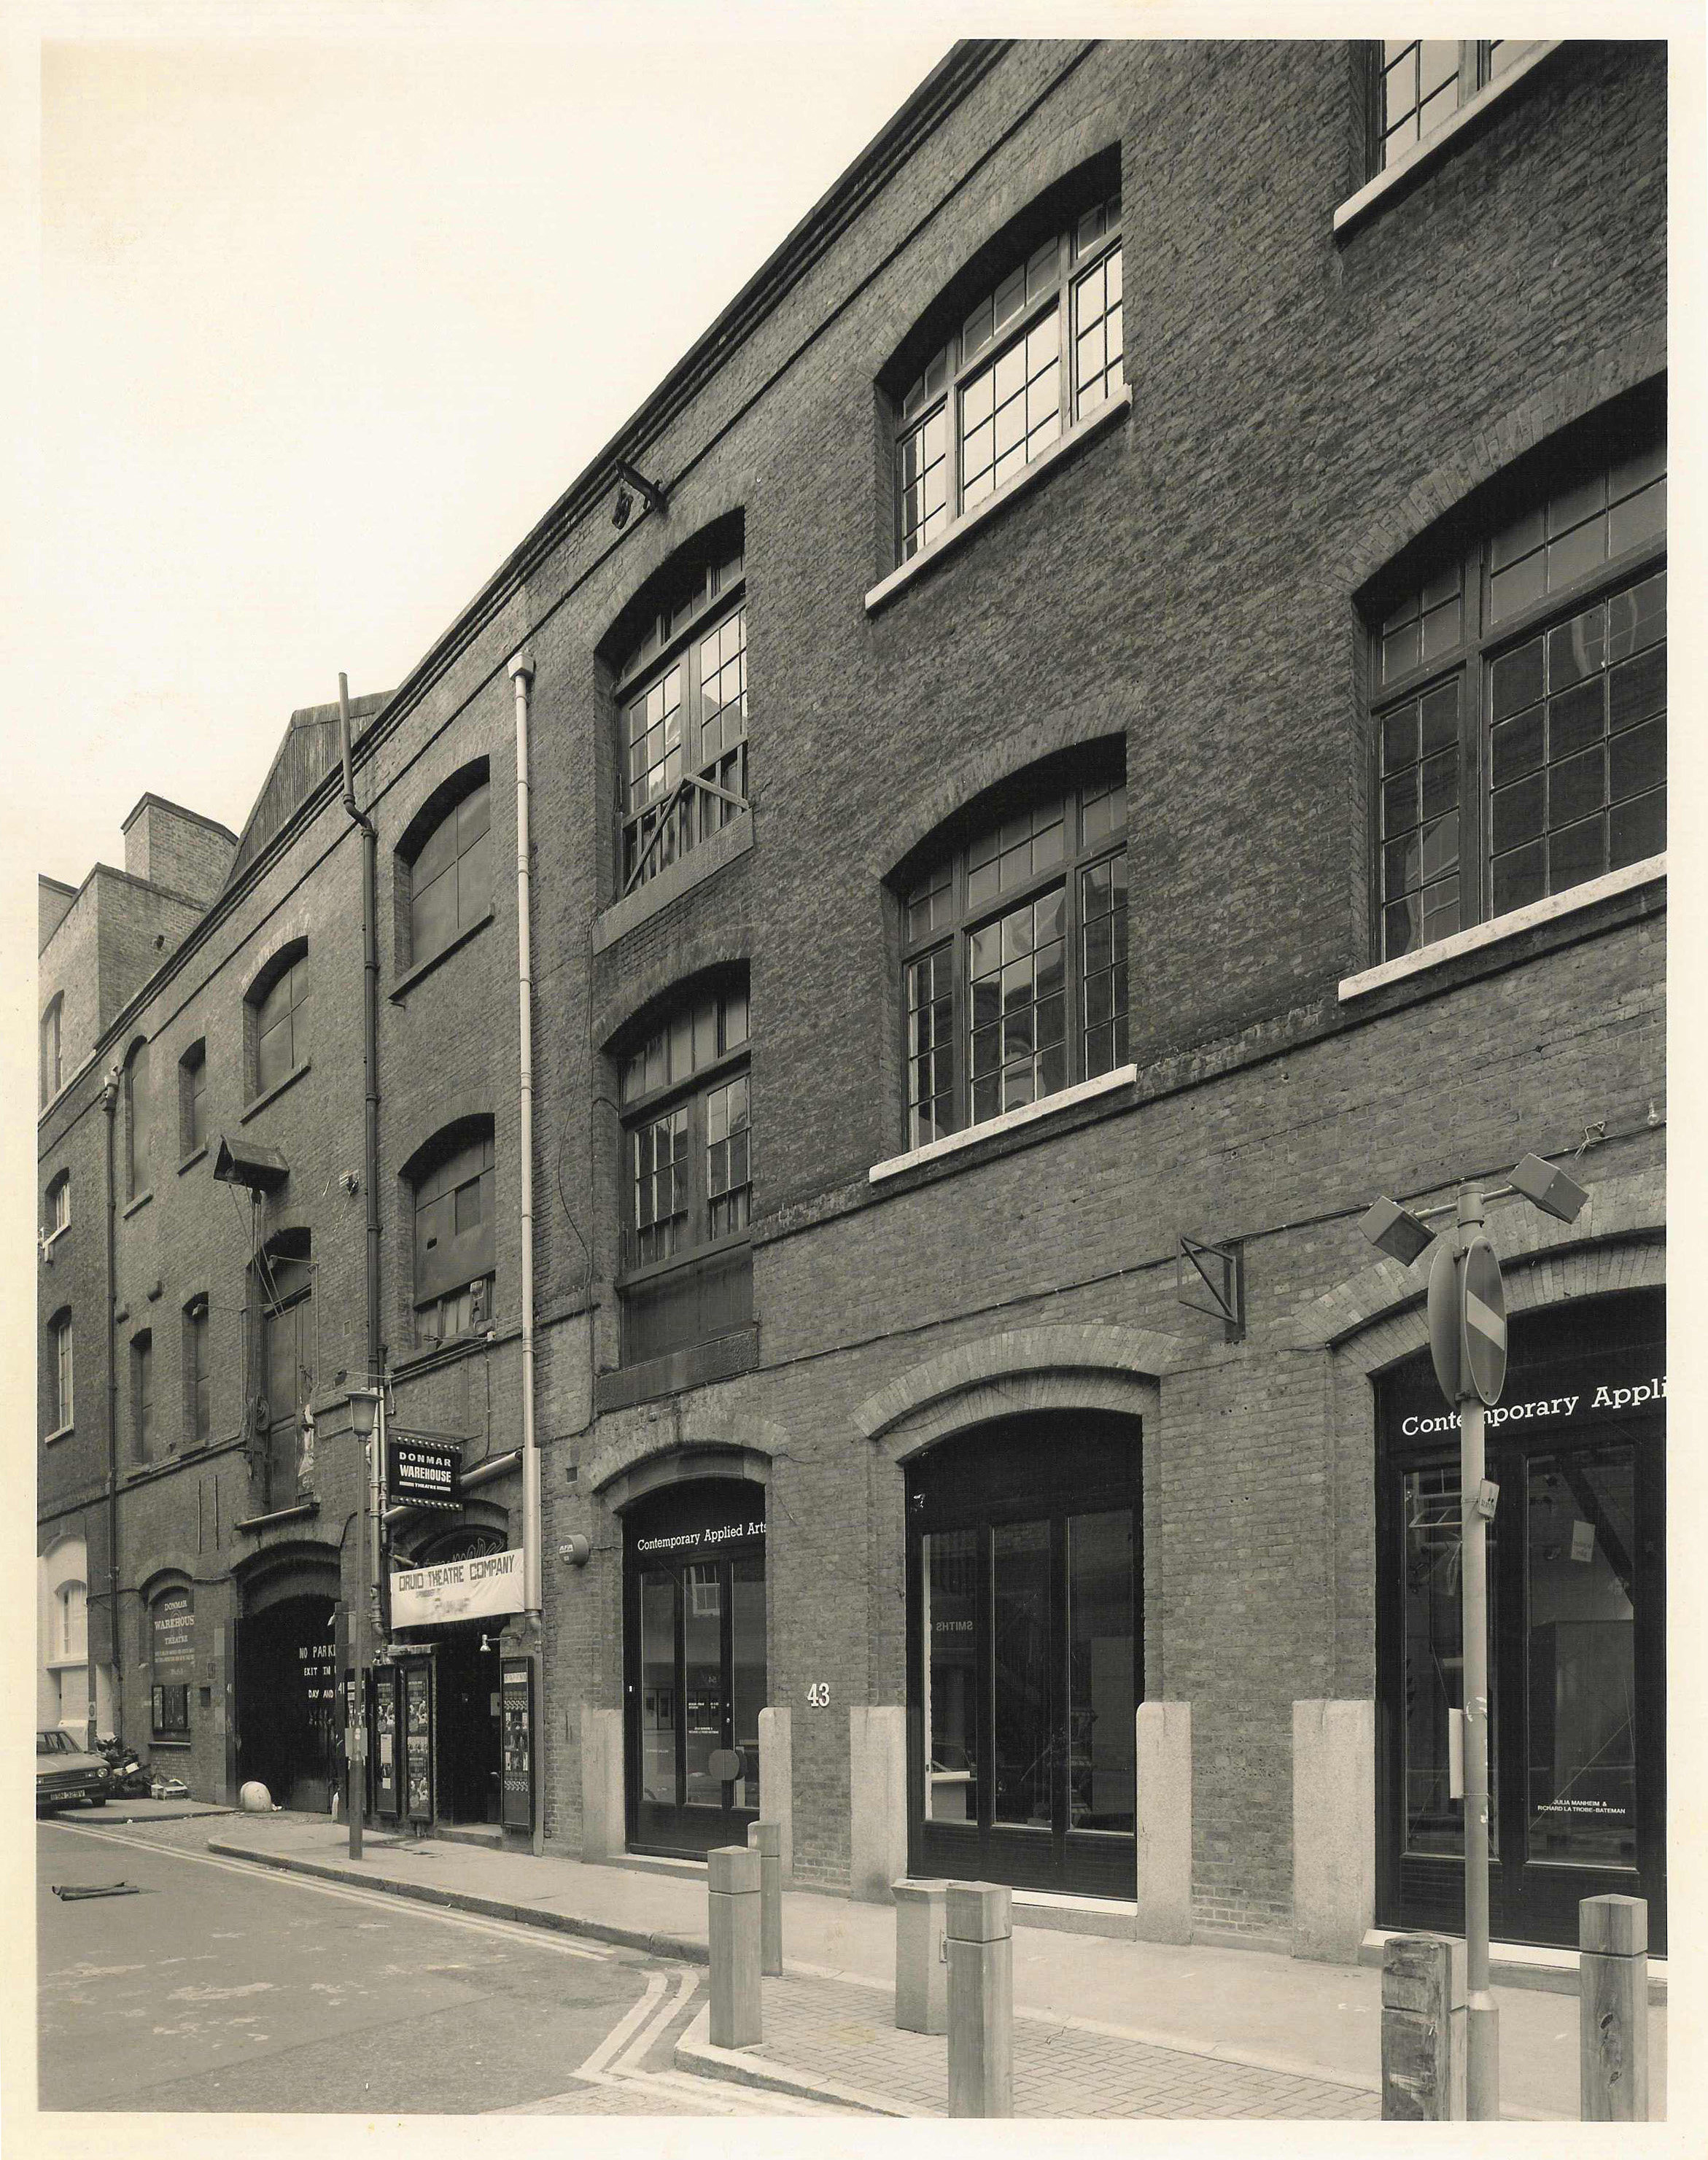 Earlham Street, Donmar Theatre 1987, restored by the Kleinwort Benson Property Fund.